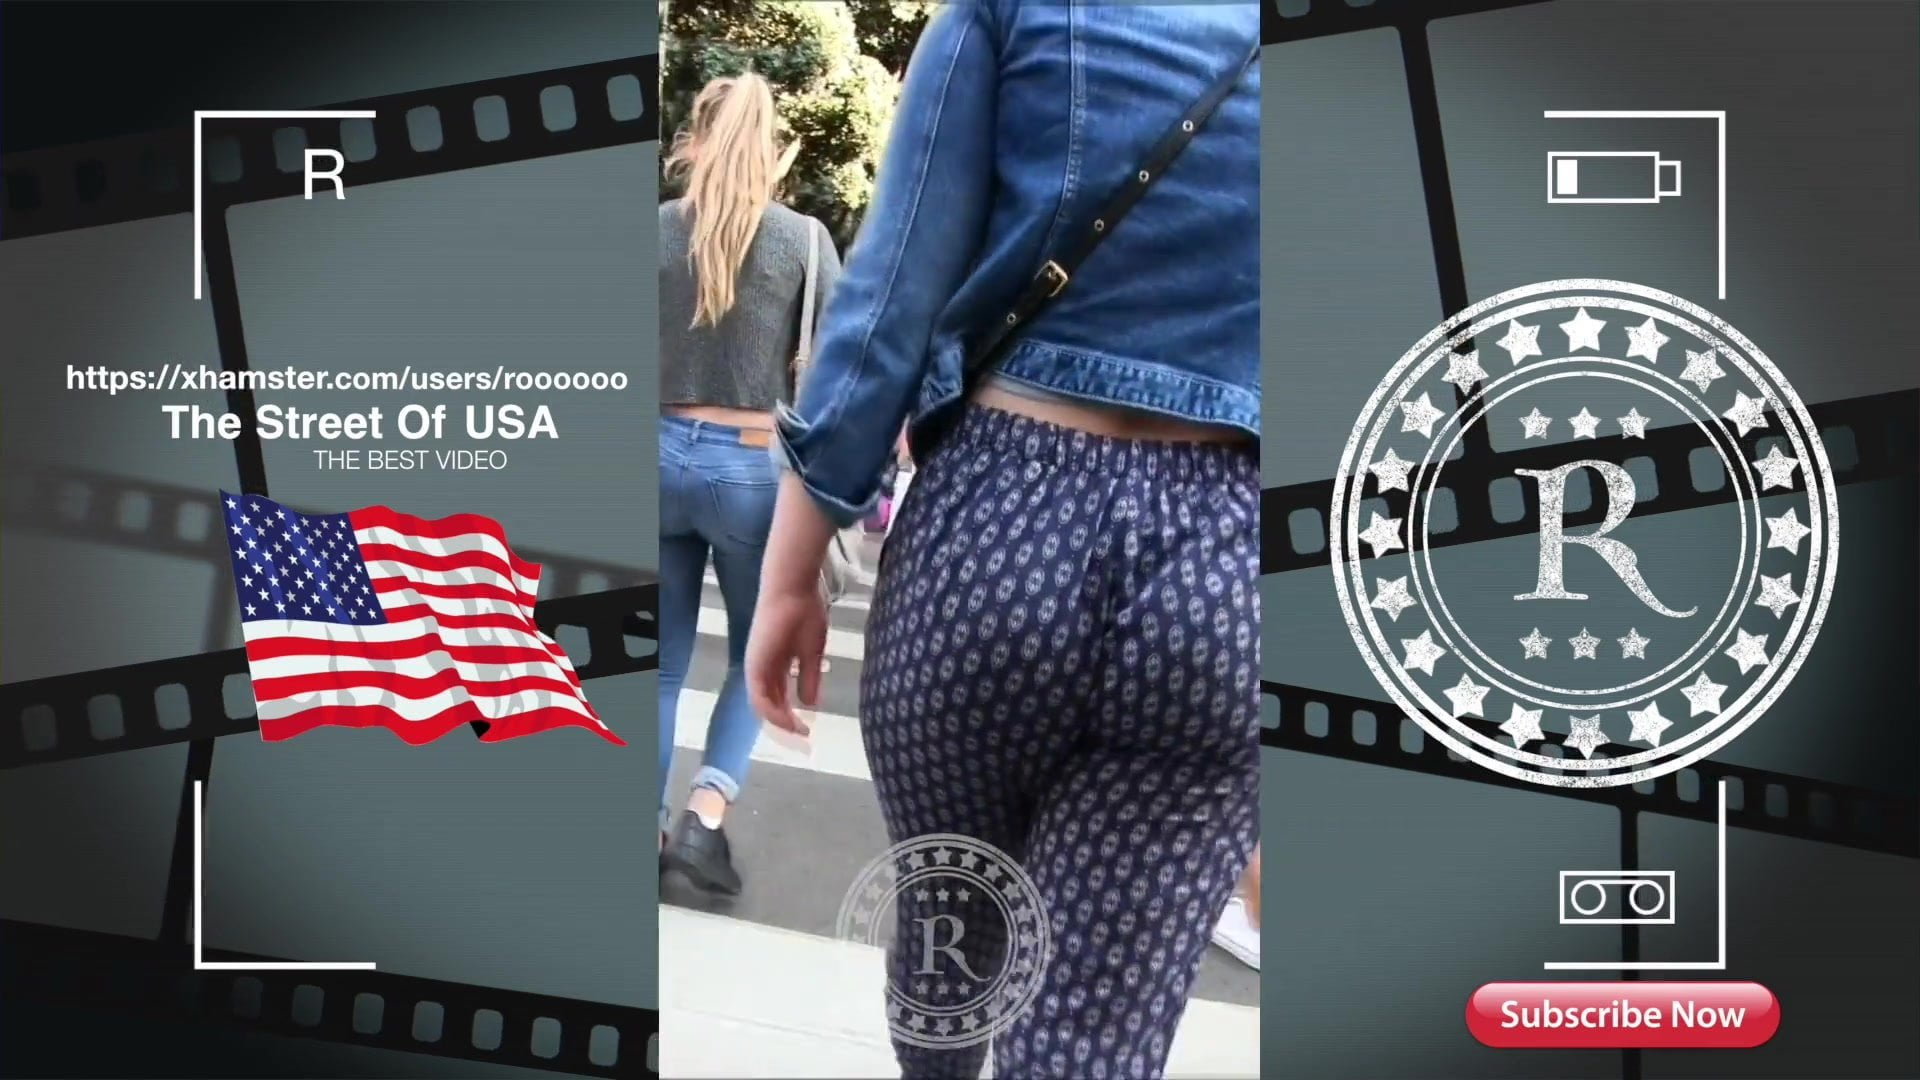 Tow girls friend – jiggly and jeans 7-7-2018( 02:44 min)